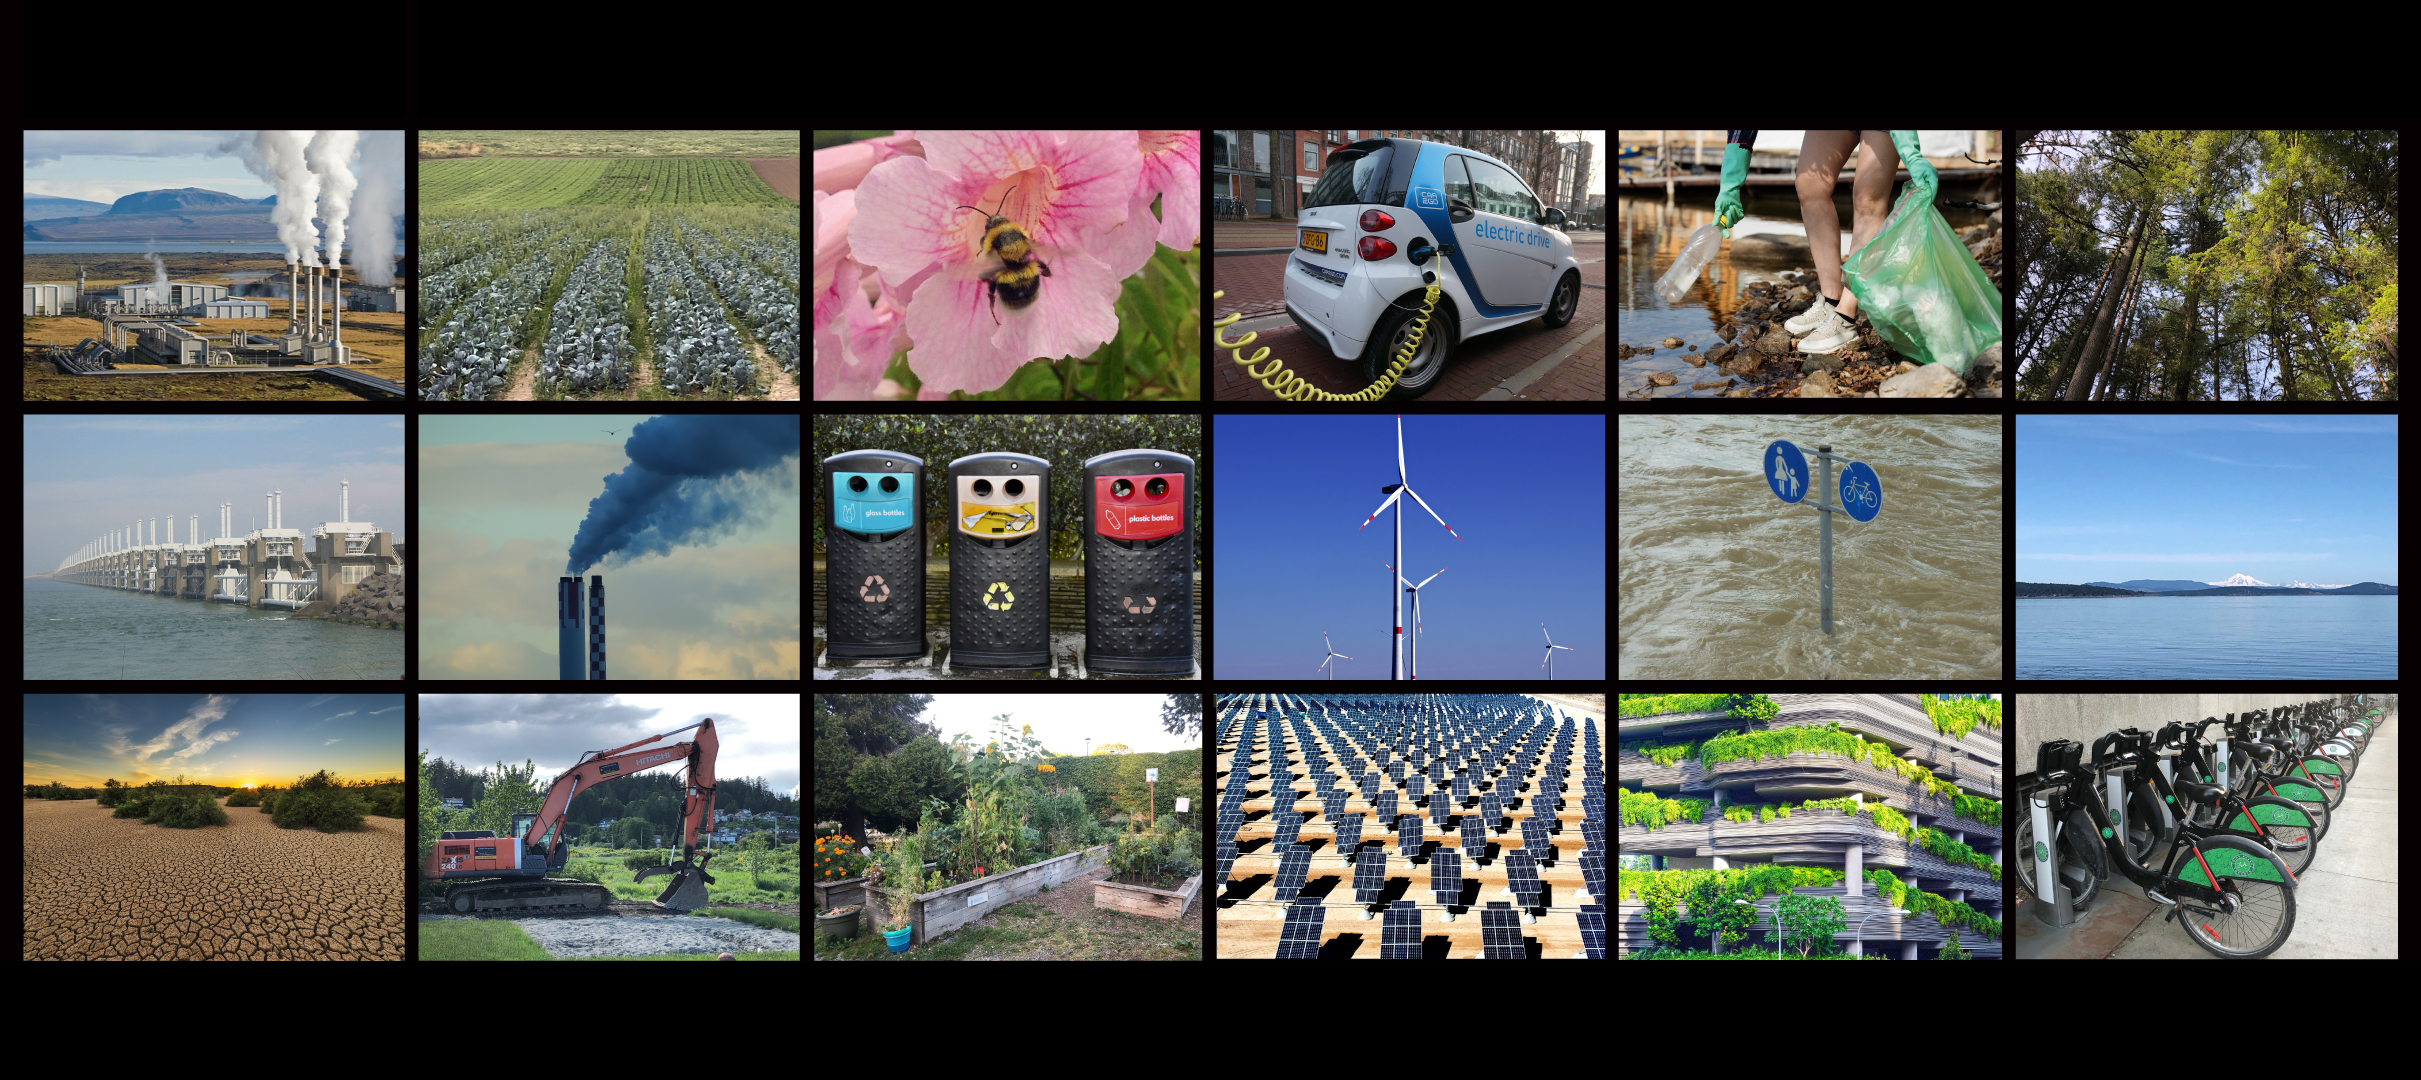 Photo Montages for Environmental Issues